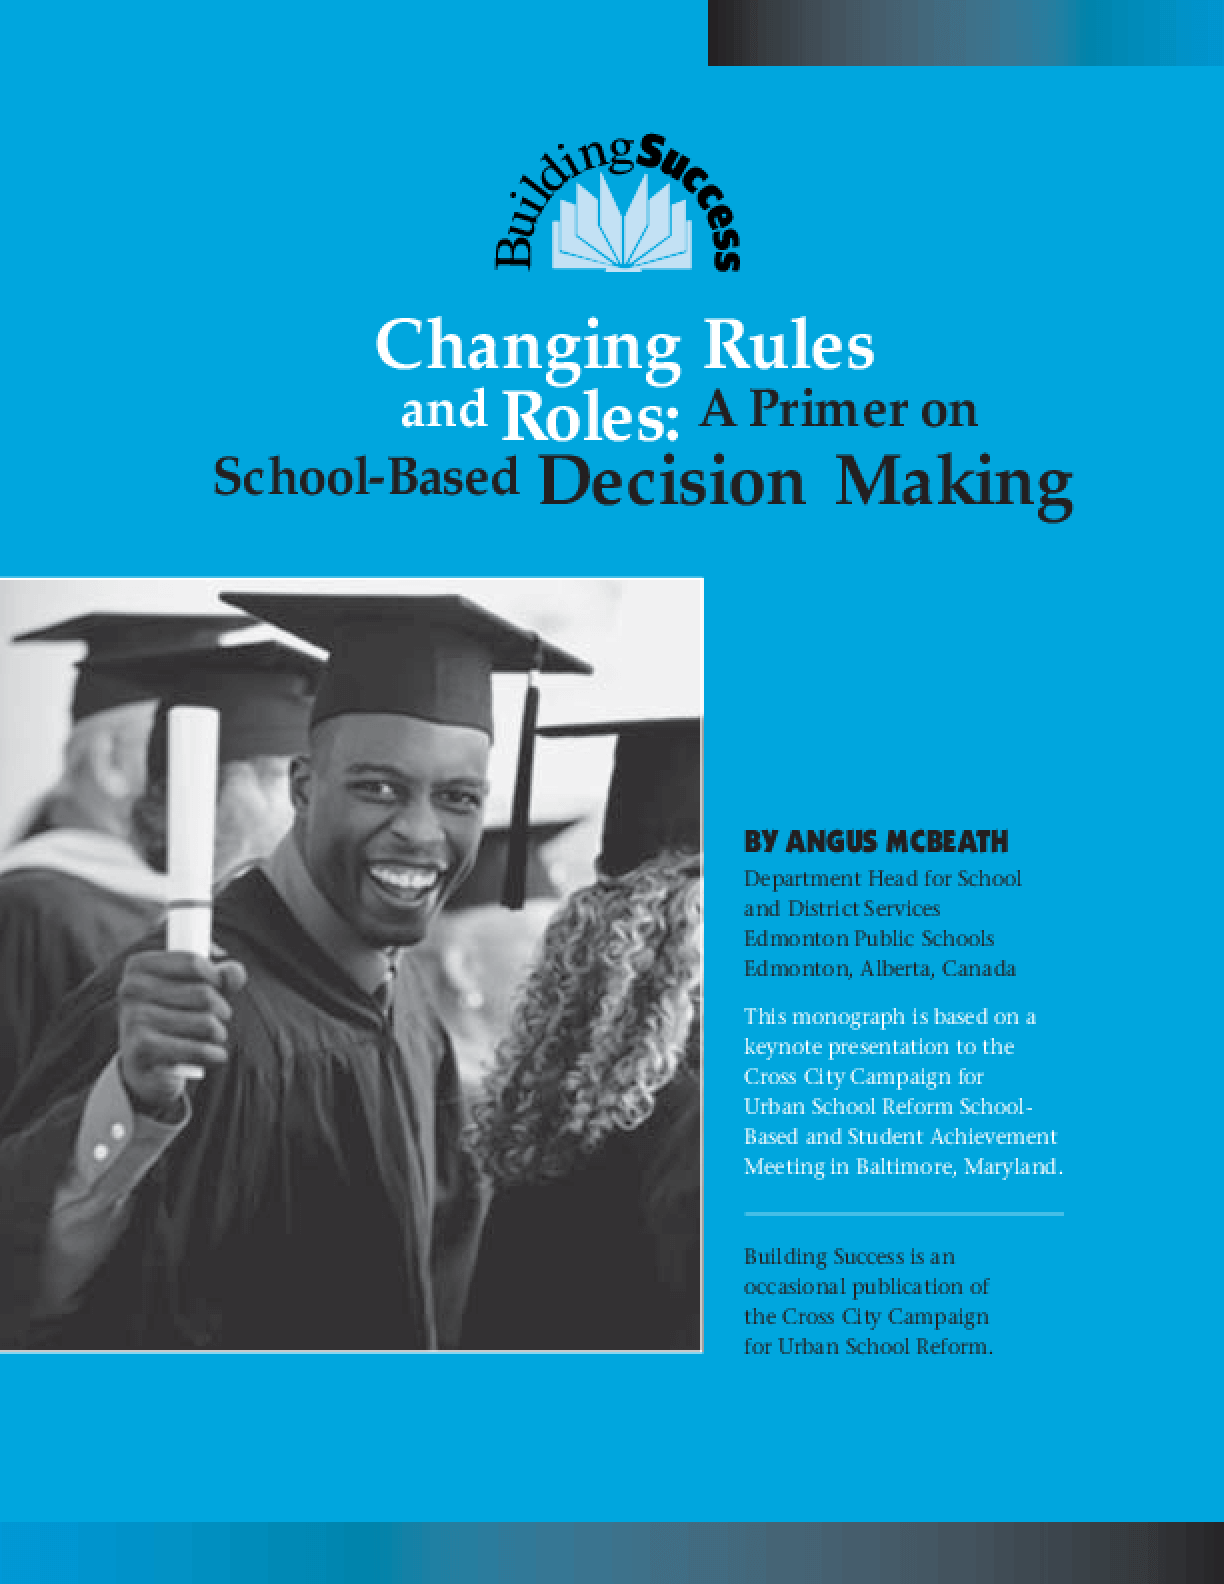 Changing Rules and Roles: A Primer On School-Based Decision Making